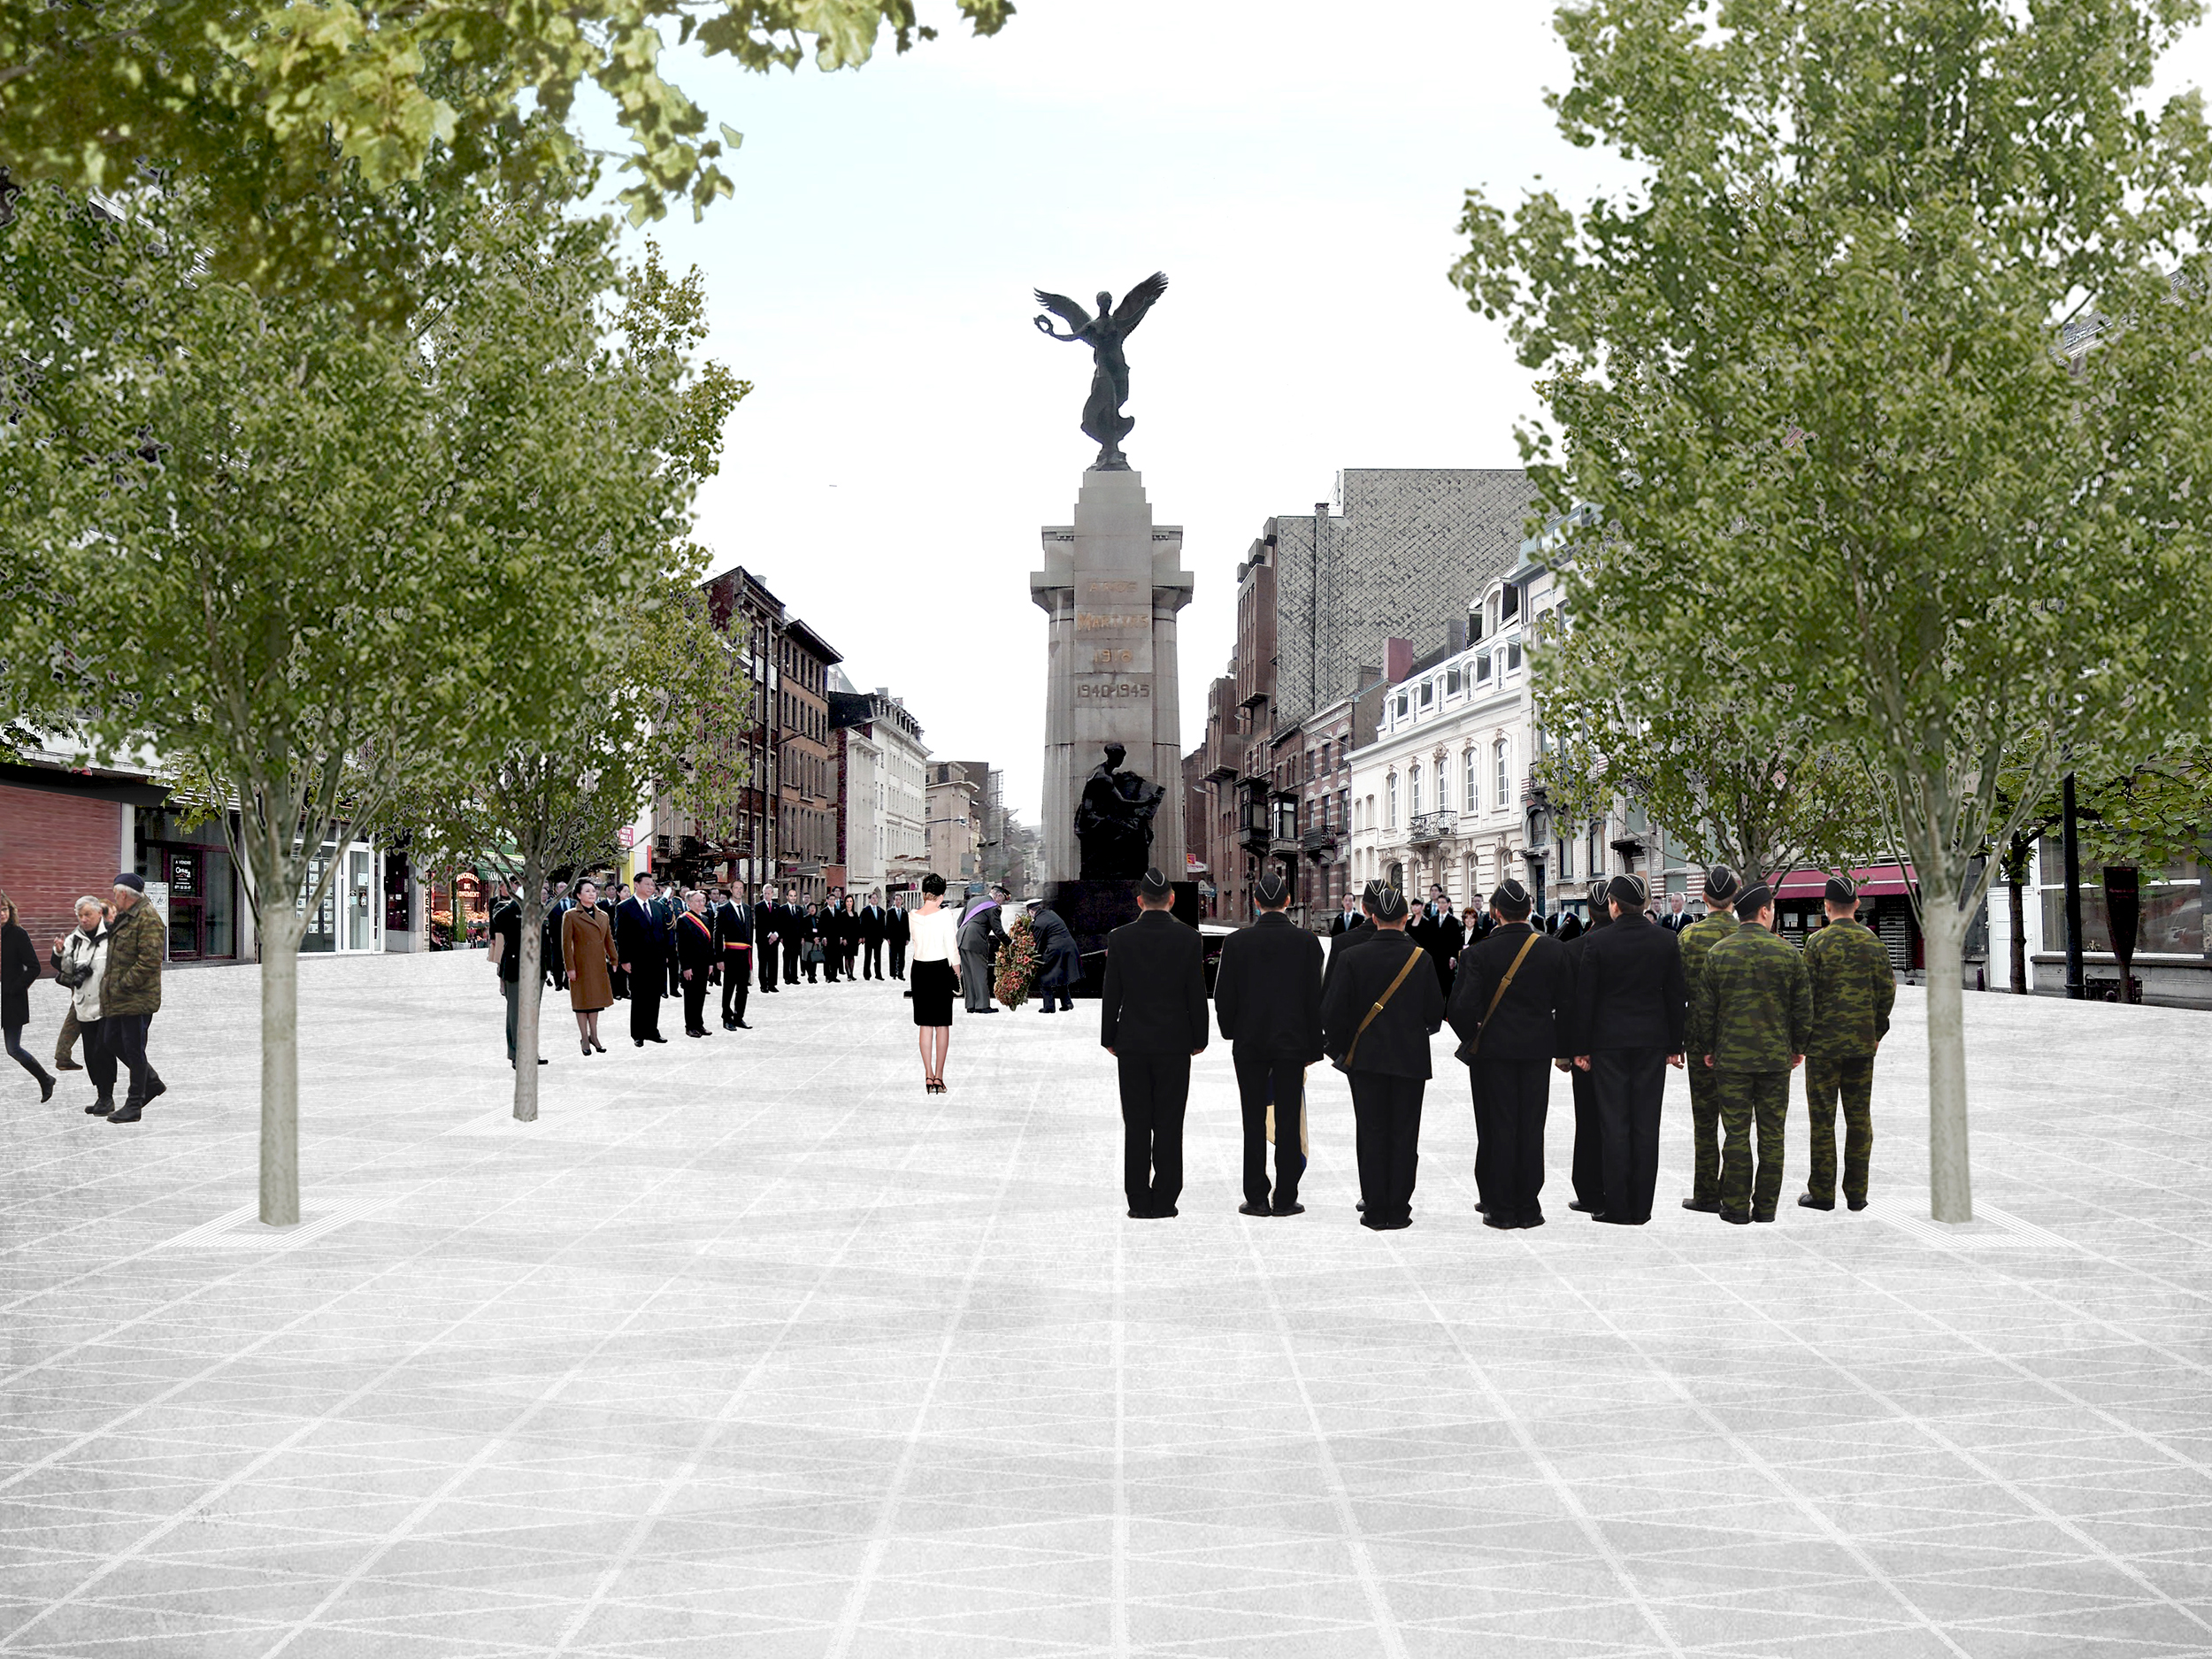 2015_CHARLEROI-DISTRICT-CREATIF-DC_FEDER_ERDF_BOUWMEESTER_PLACE-DU-MONUMENT_2500.jpg